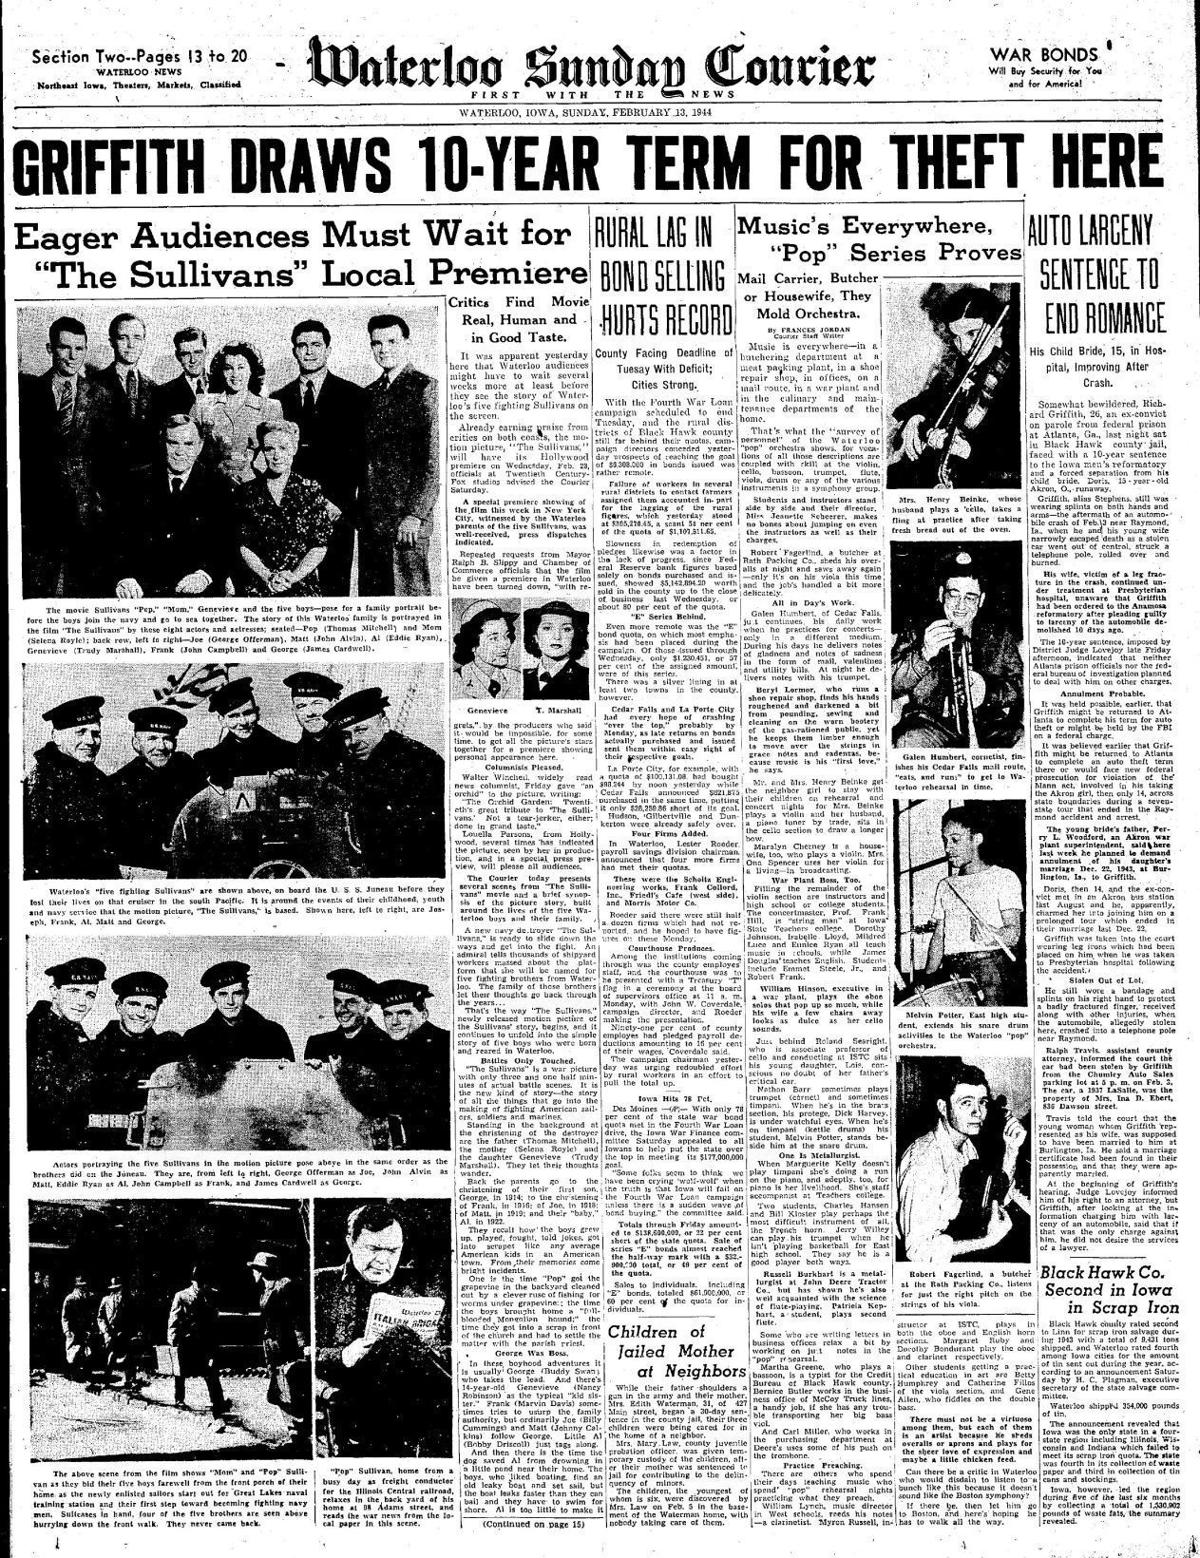 Courier Feb. 13, 1944